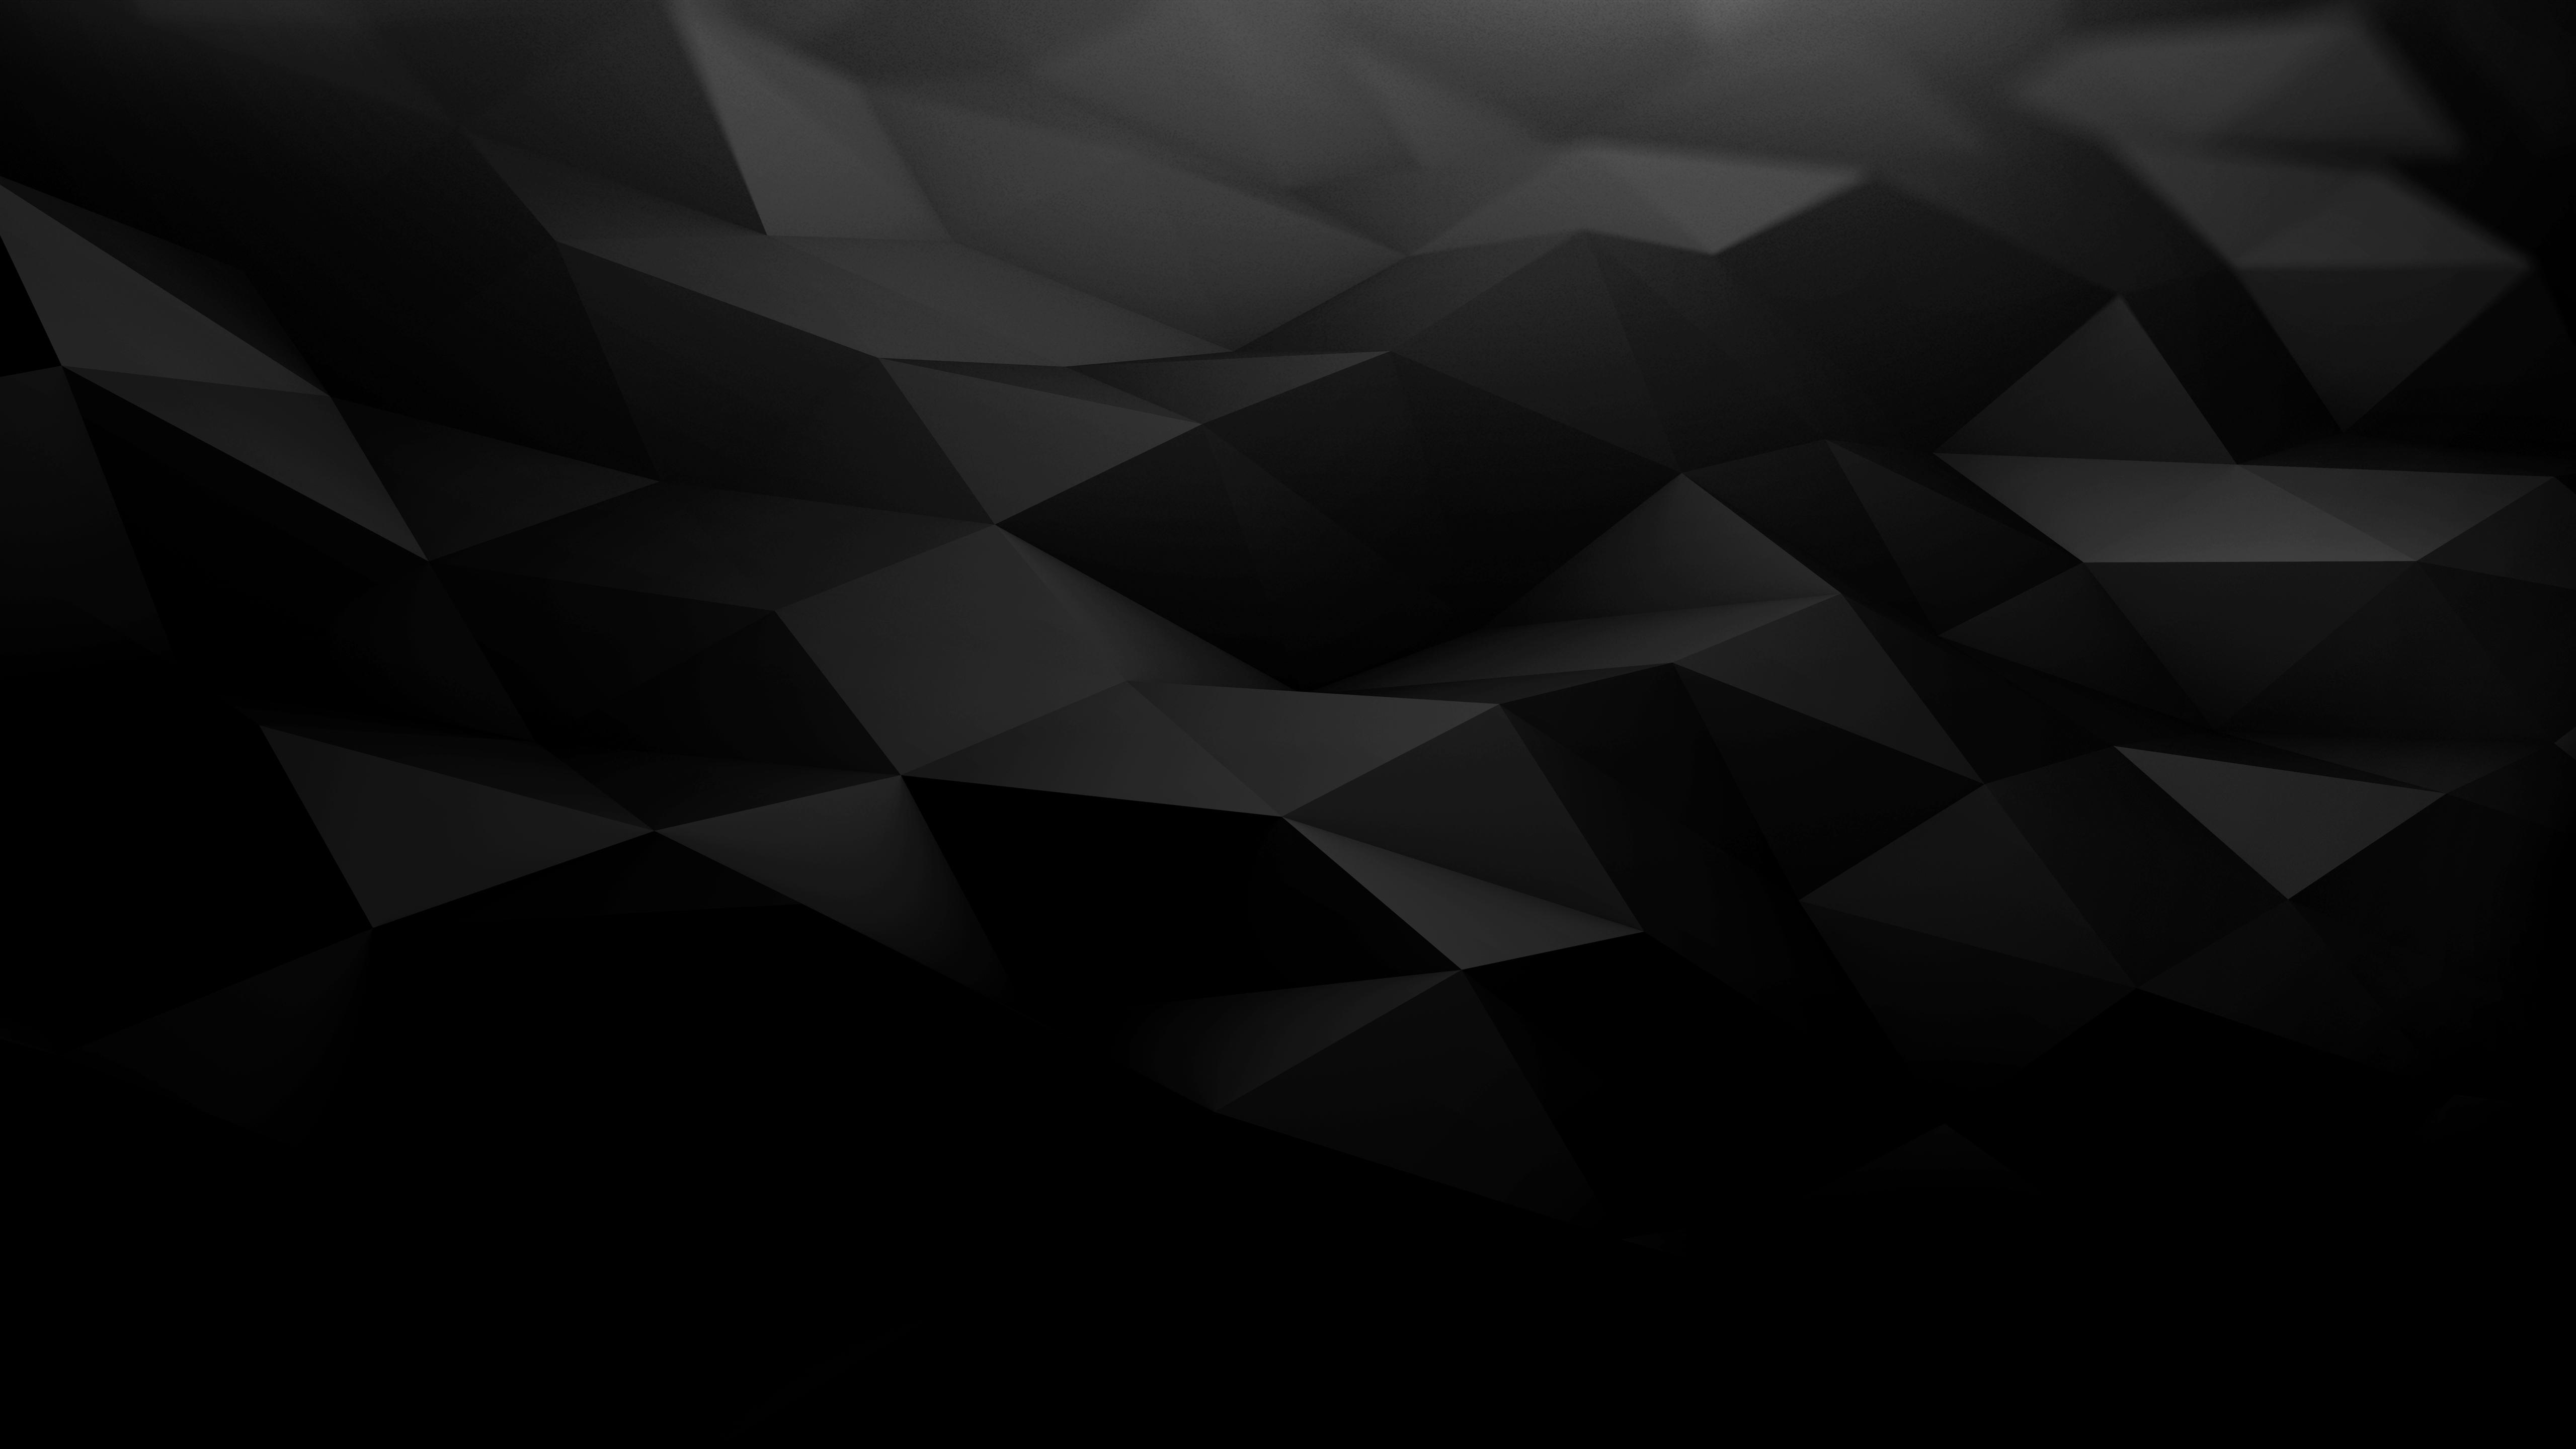 Noir 5k Hd Abstract 4k Wallpapers Images Backgrounds